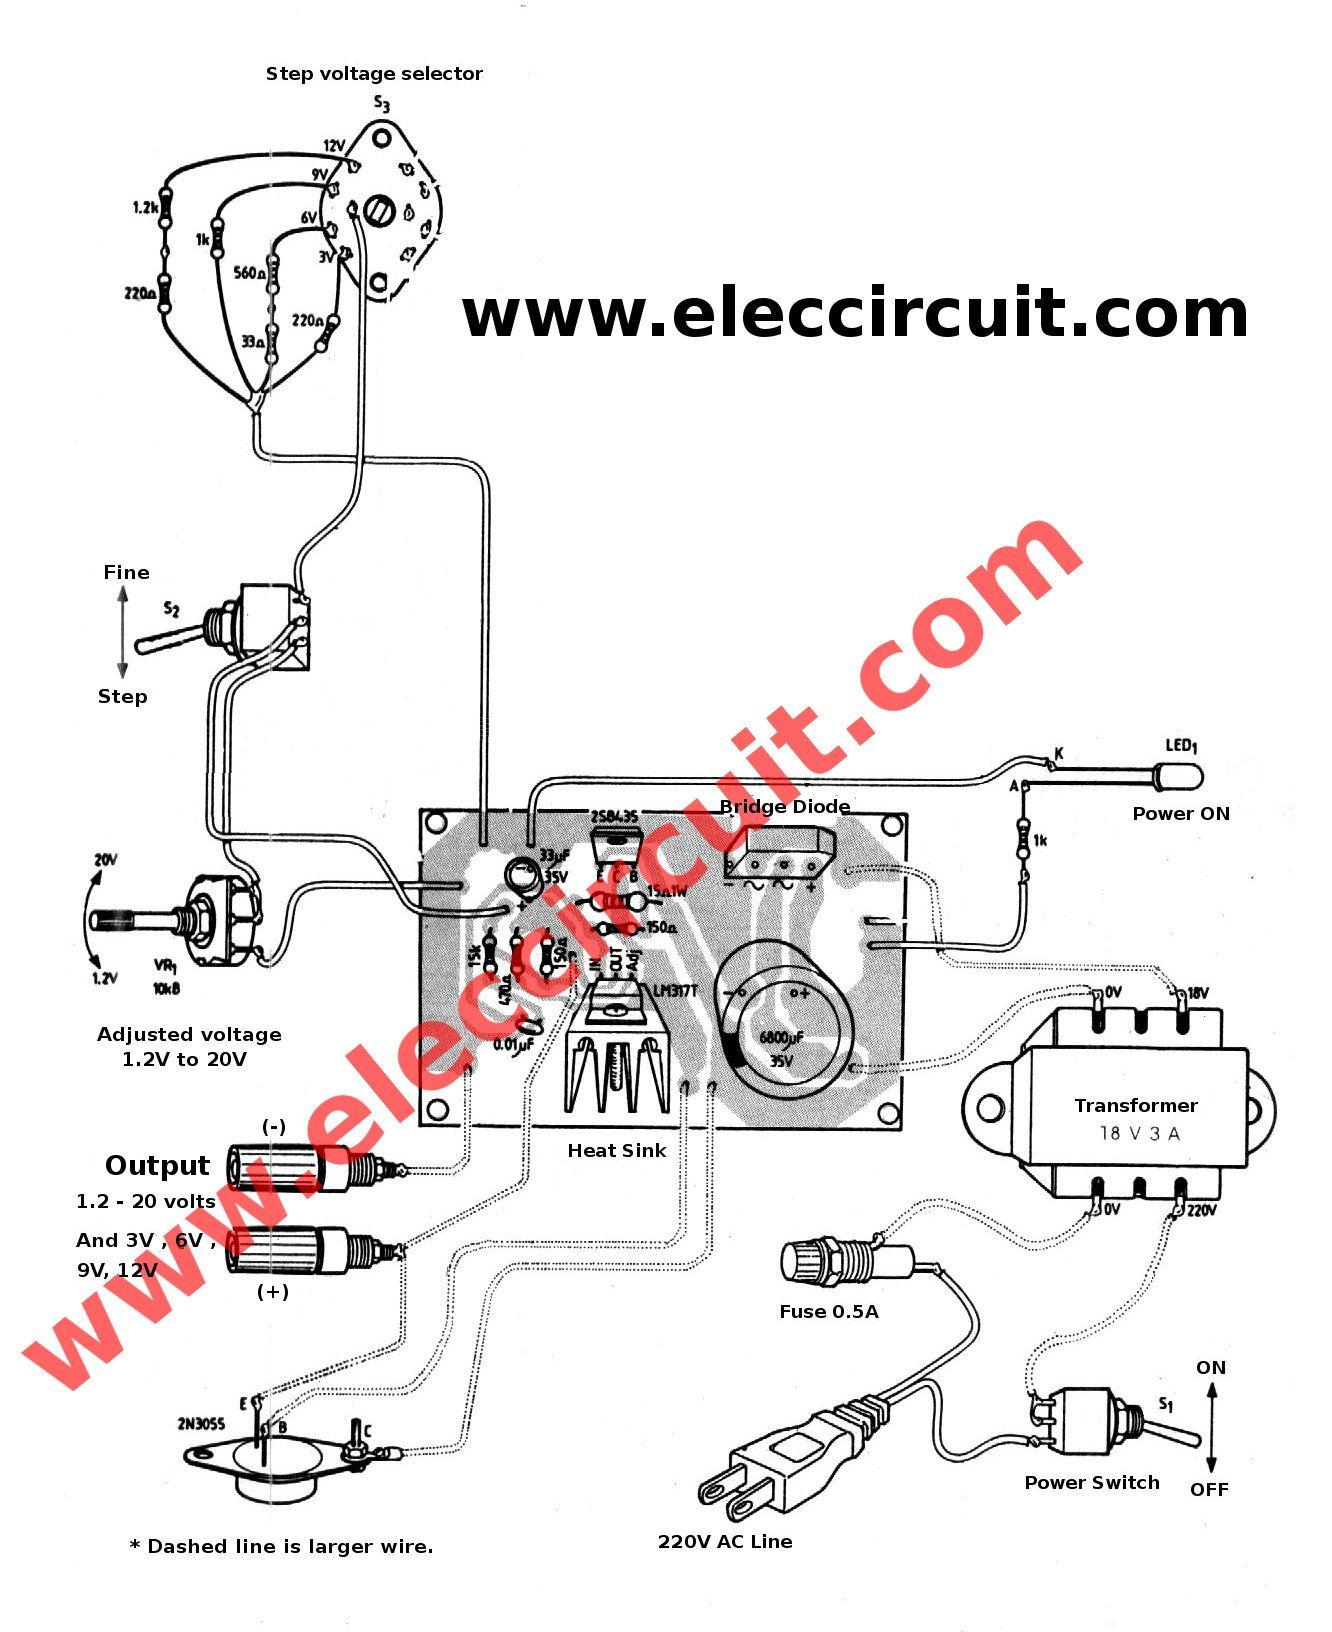 small resolution of we recommend the lm317 adjustable voltage regulator circuit it use normally component lm317 popular dc voltage regulator and 2n3055 transistor to boost up